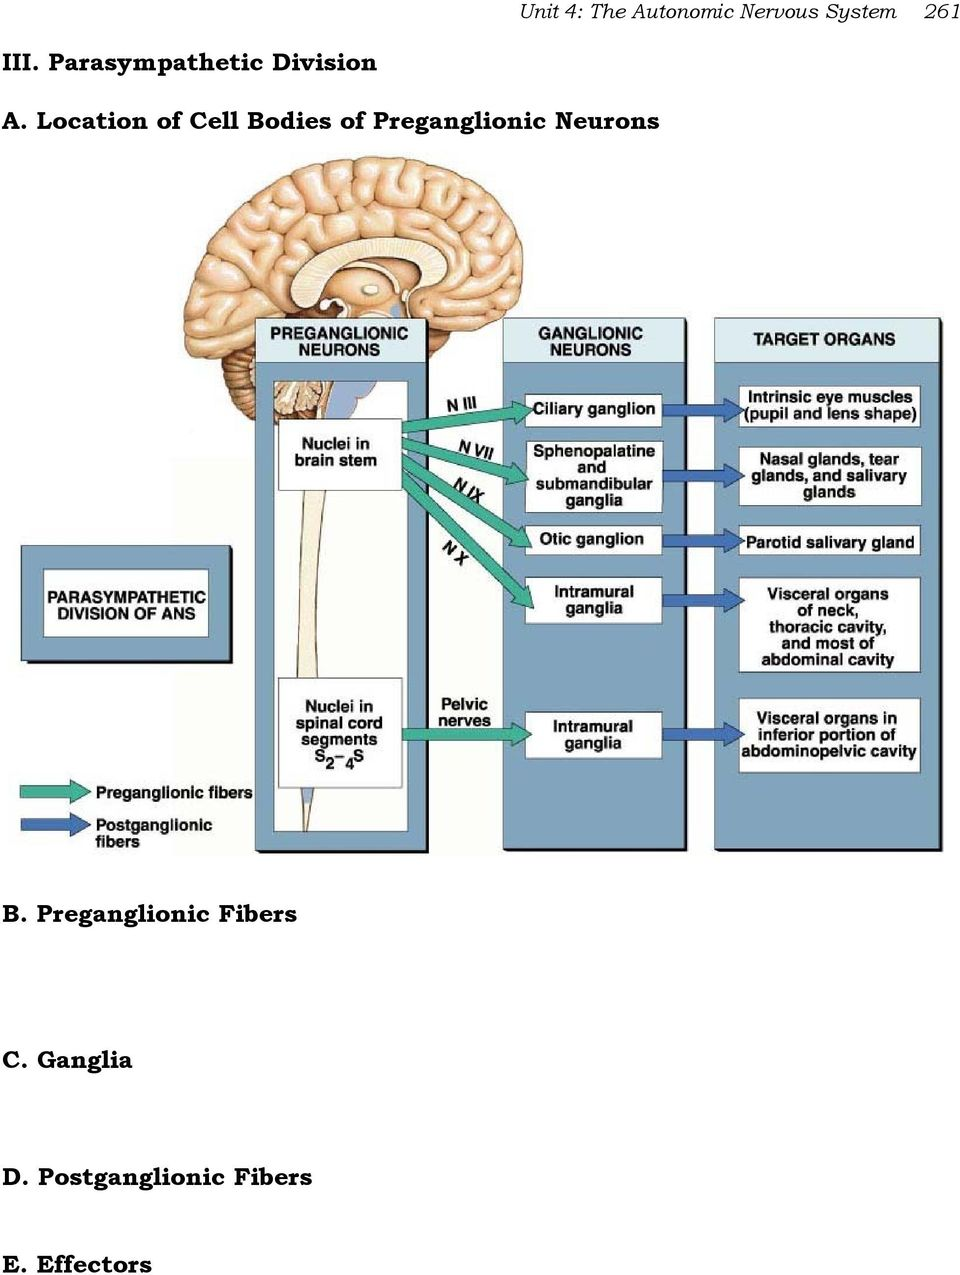 Location of Cell Bodies of Preganglionic Neurons